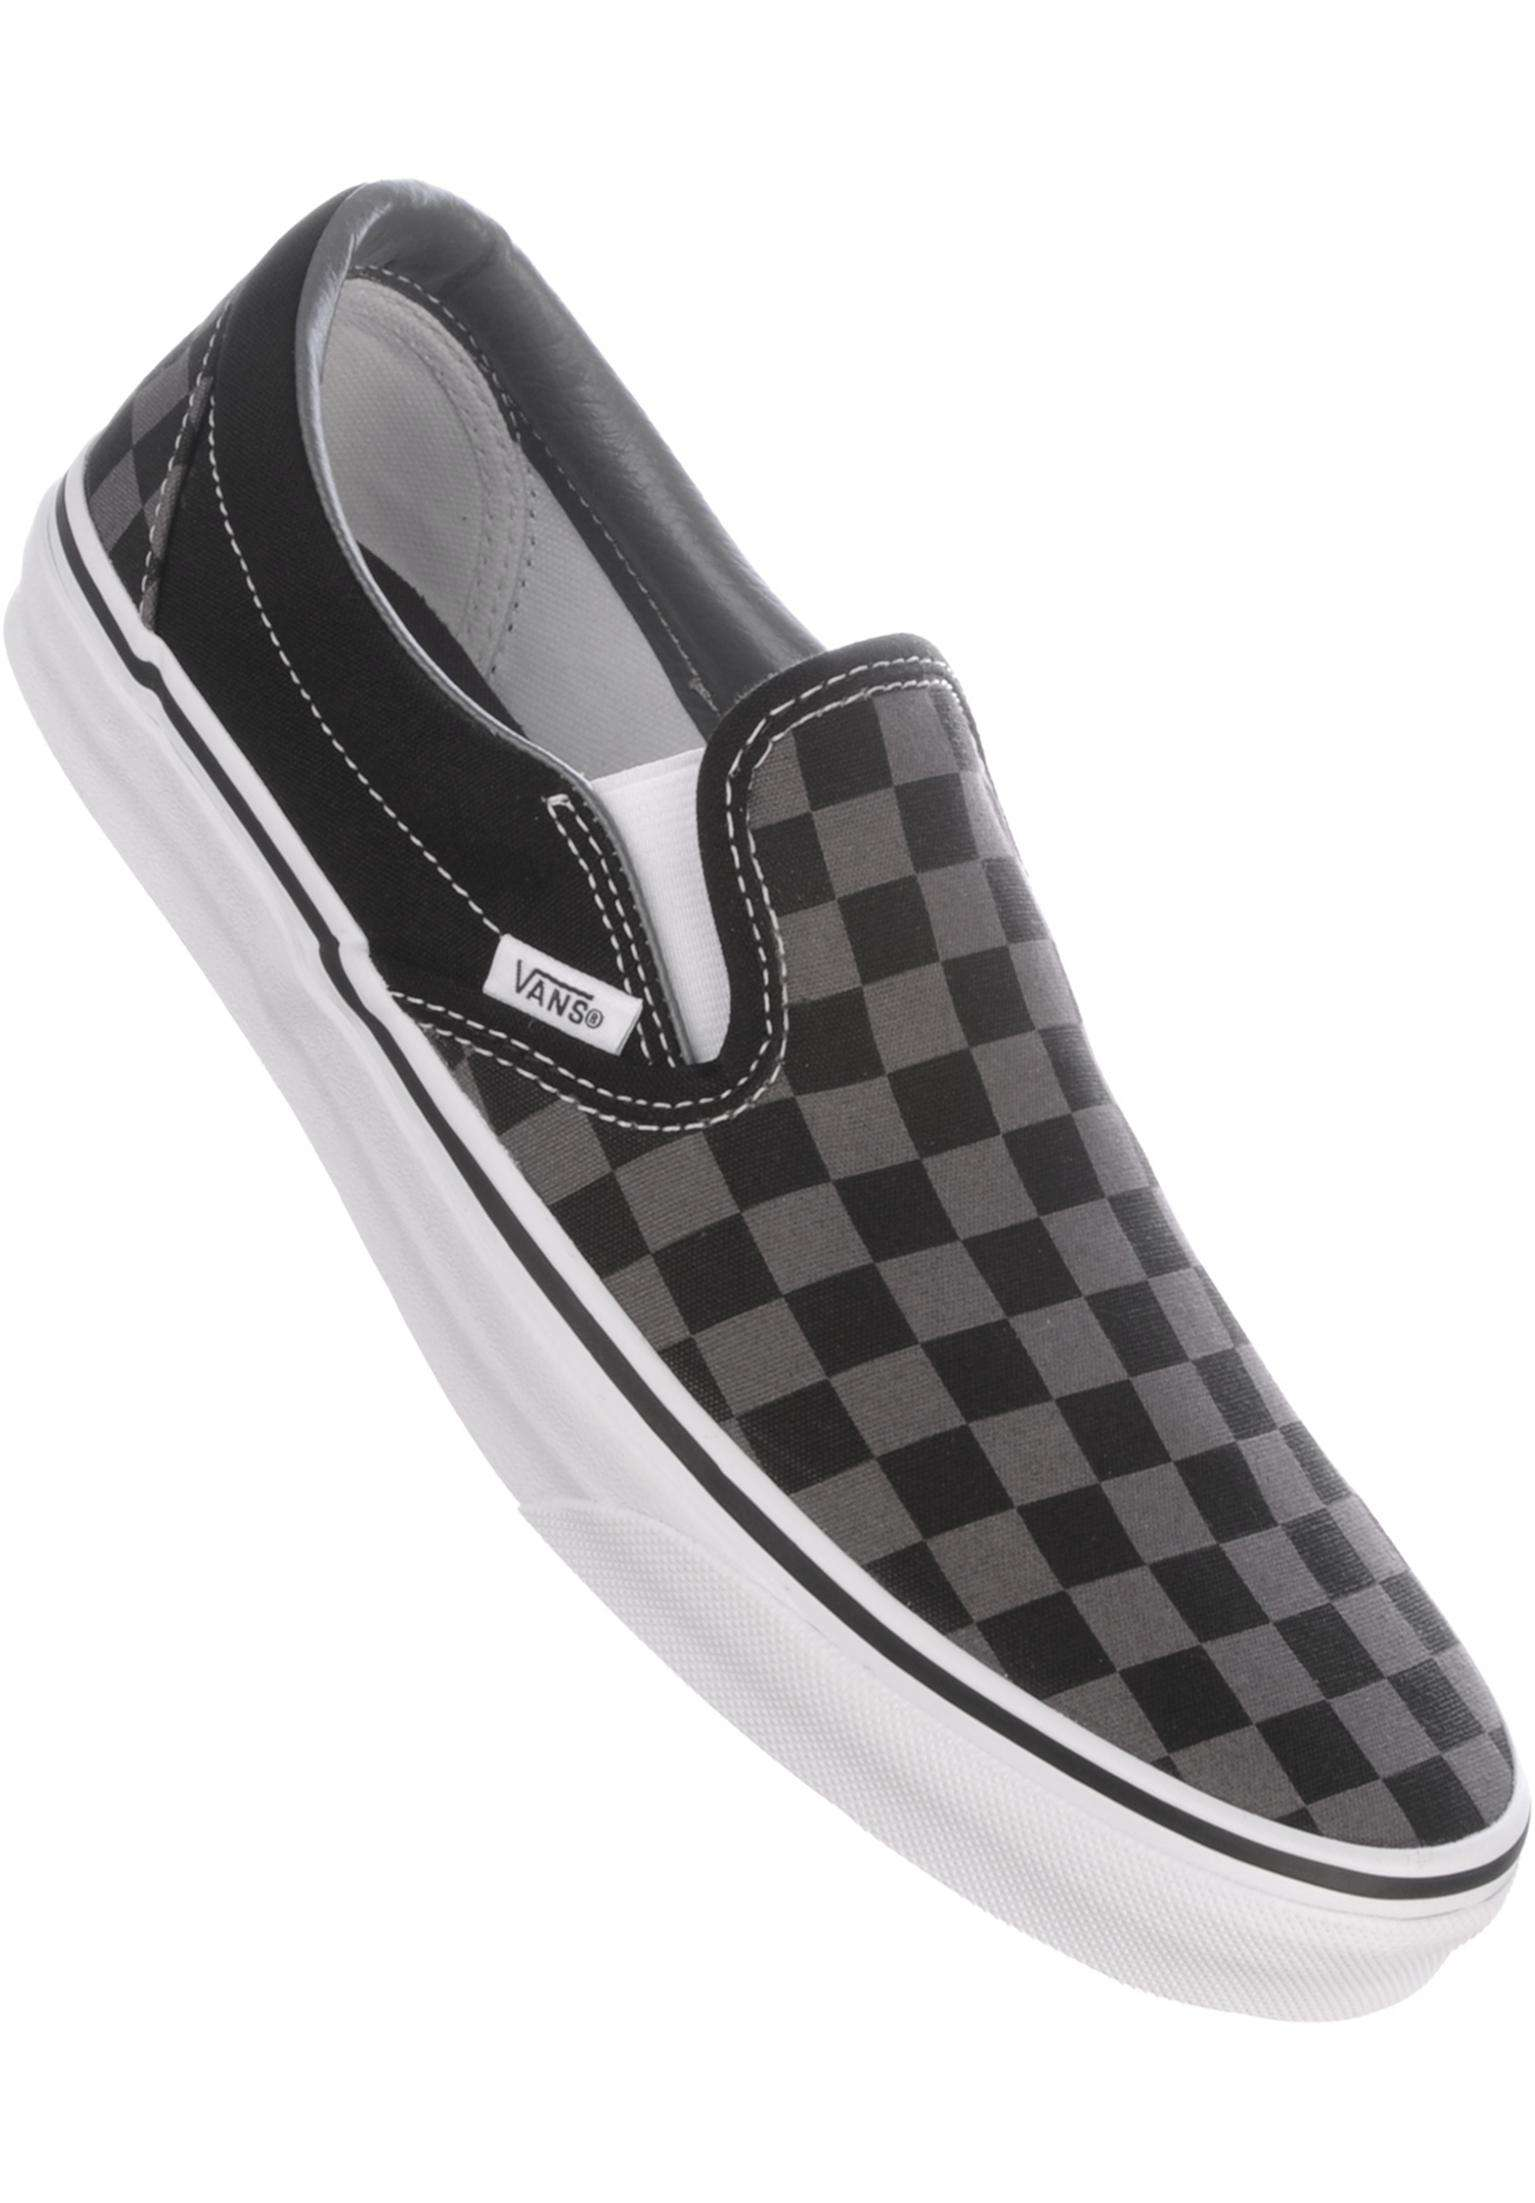 7db8f12737e5f8 Classic-Slip-On Vans All Shoes in black-pewter-checkerboard for Men ...